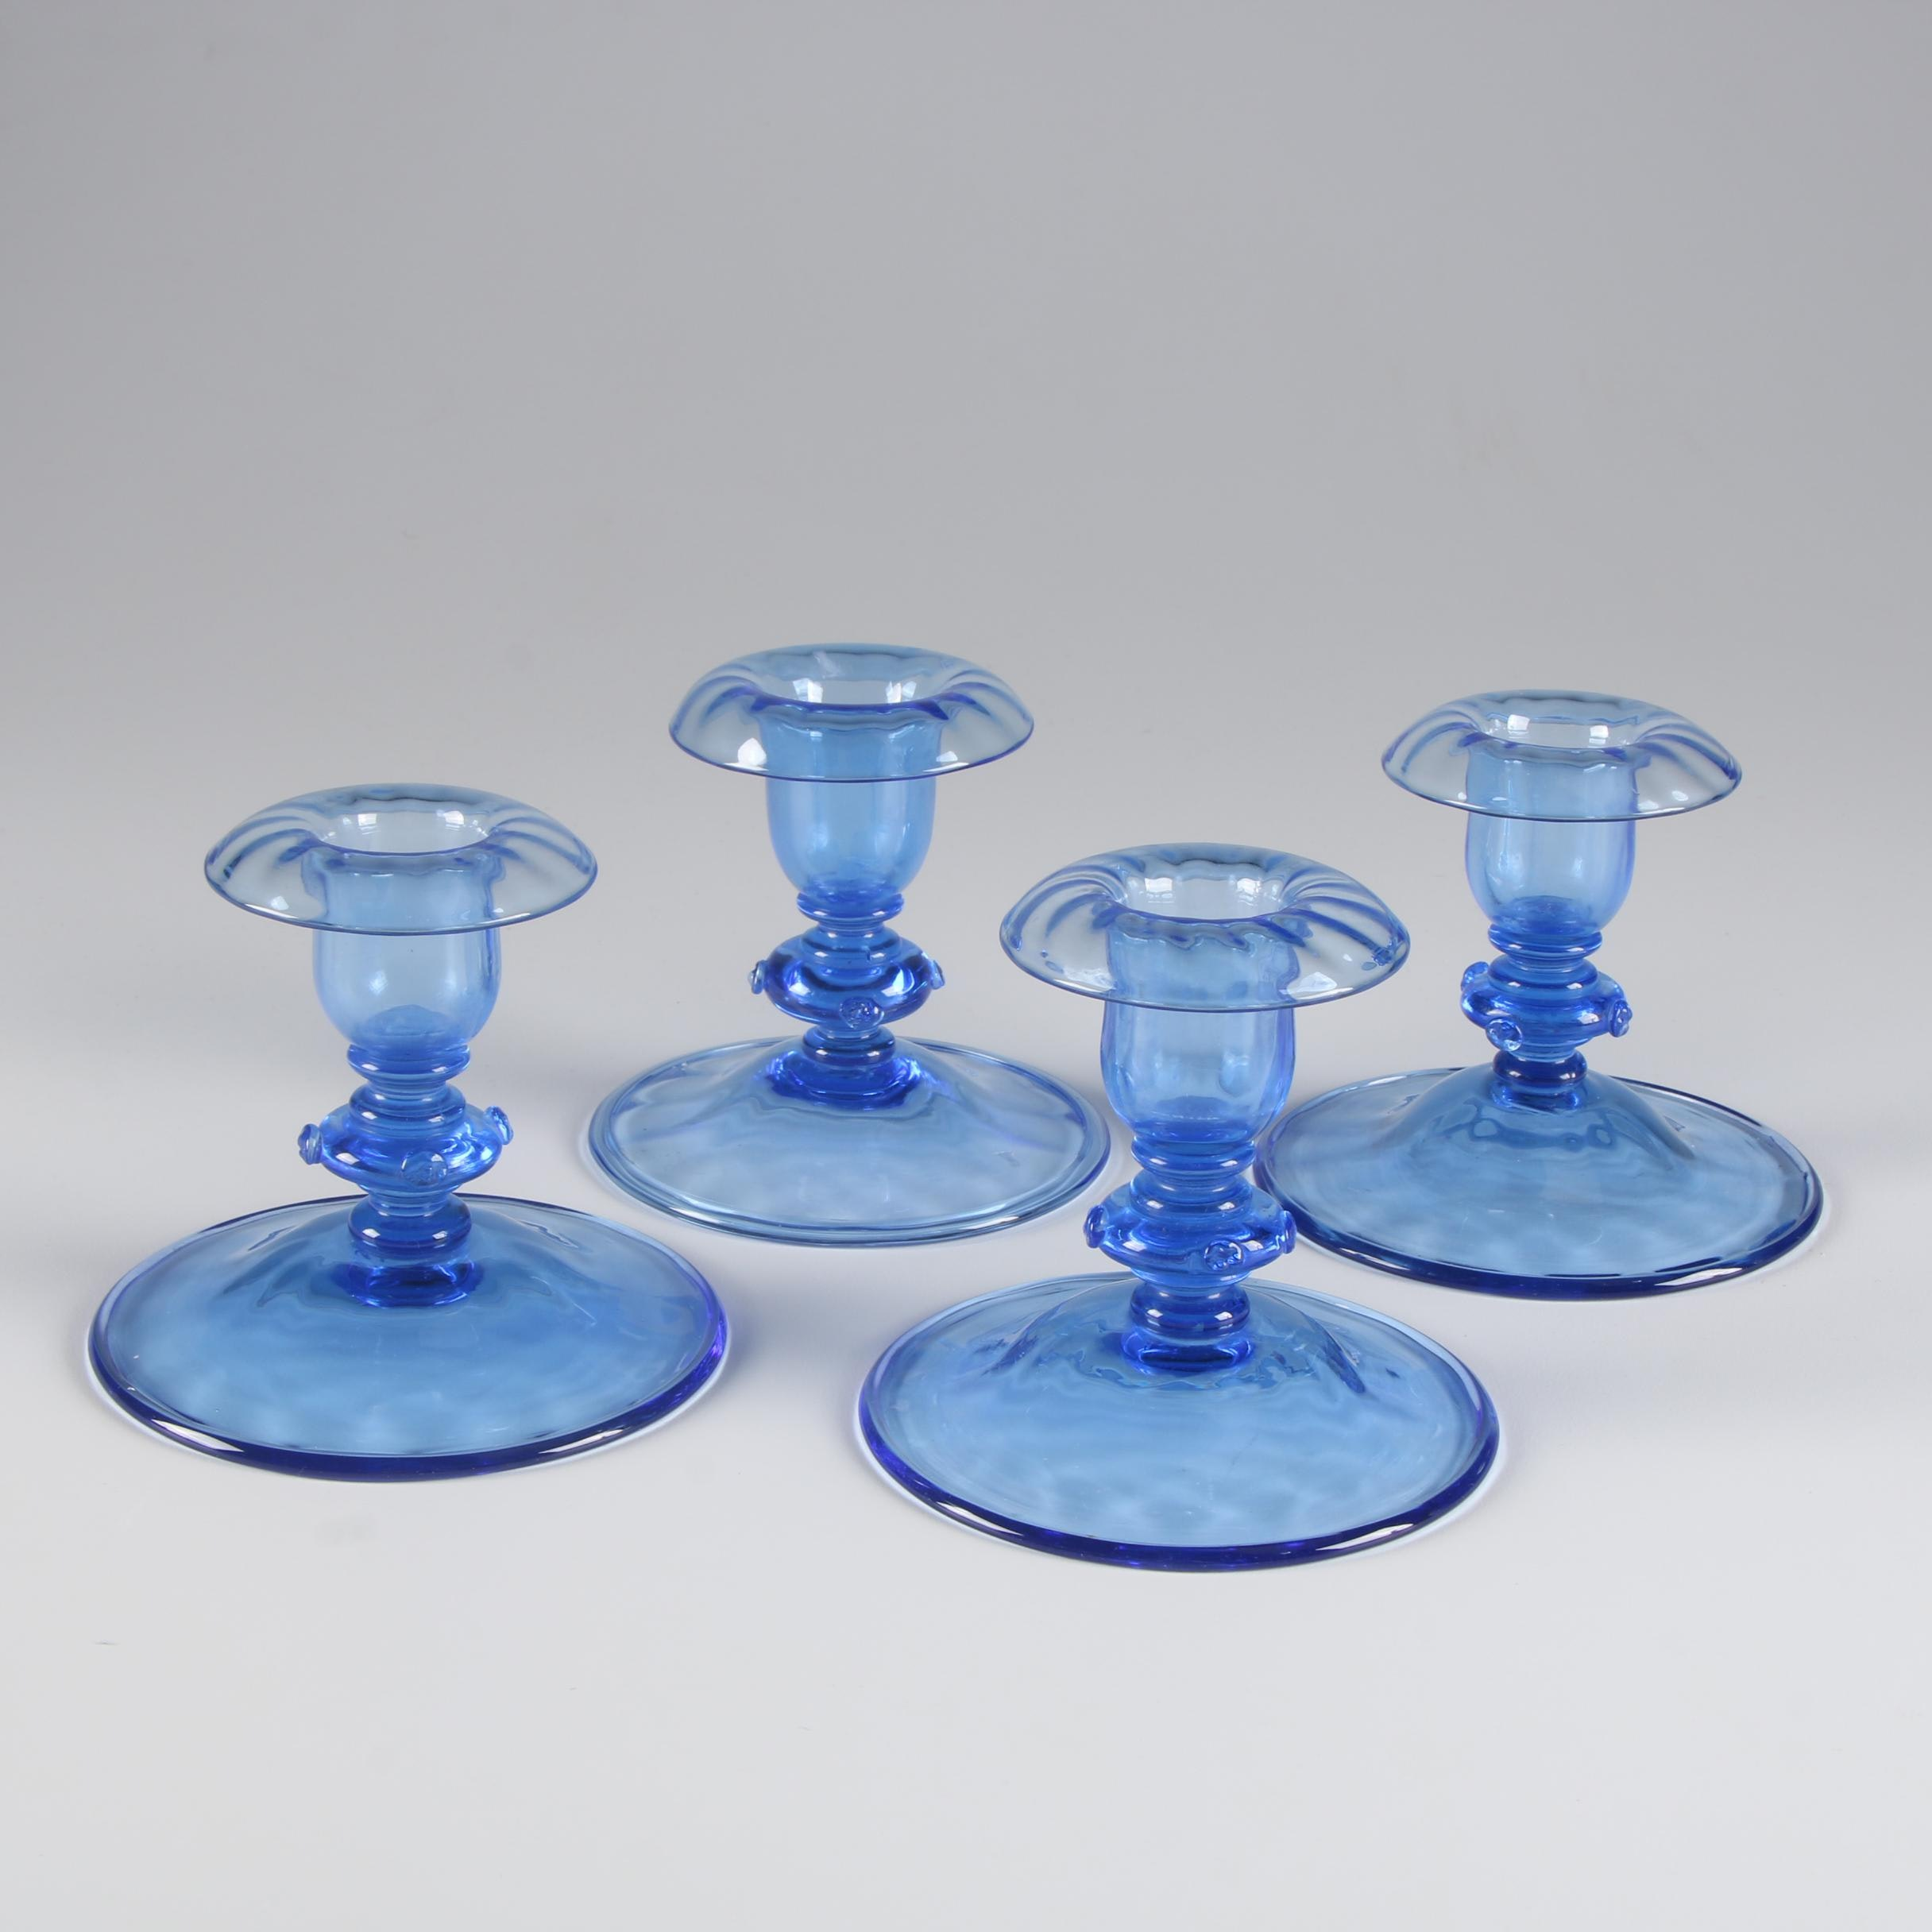 Steuben French Blue Art Glass Candlesticks, Early 20th Century